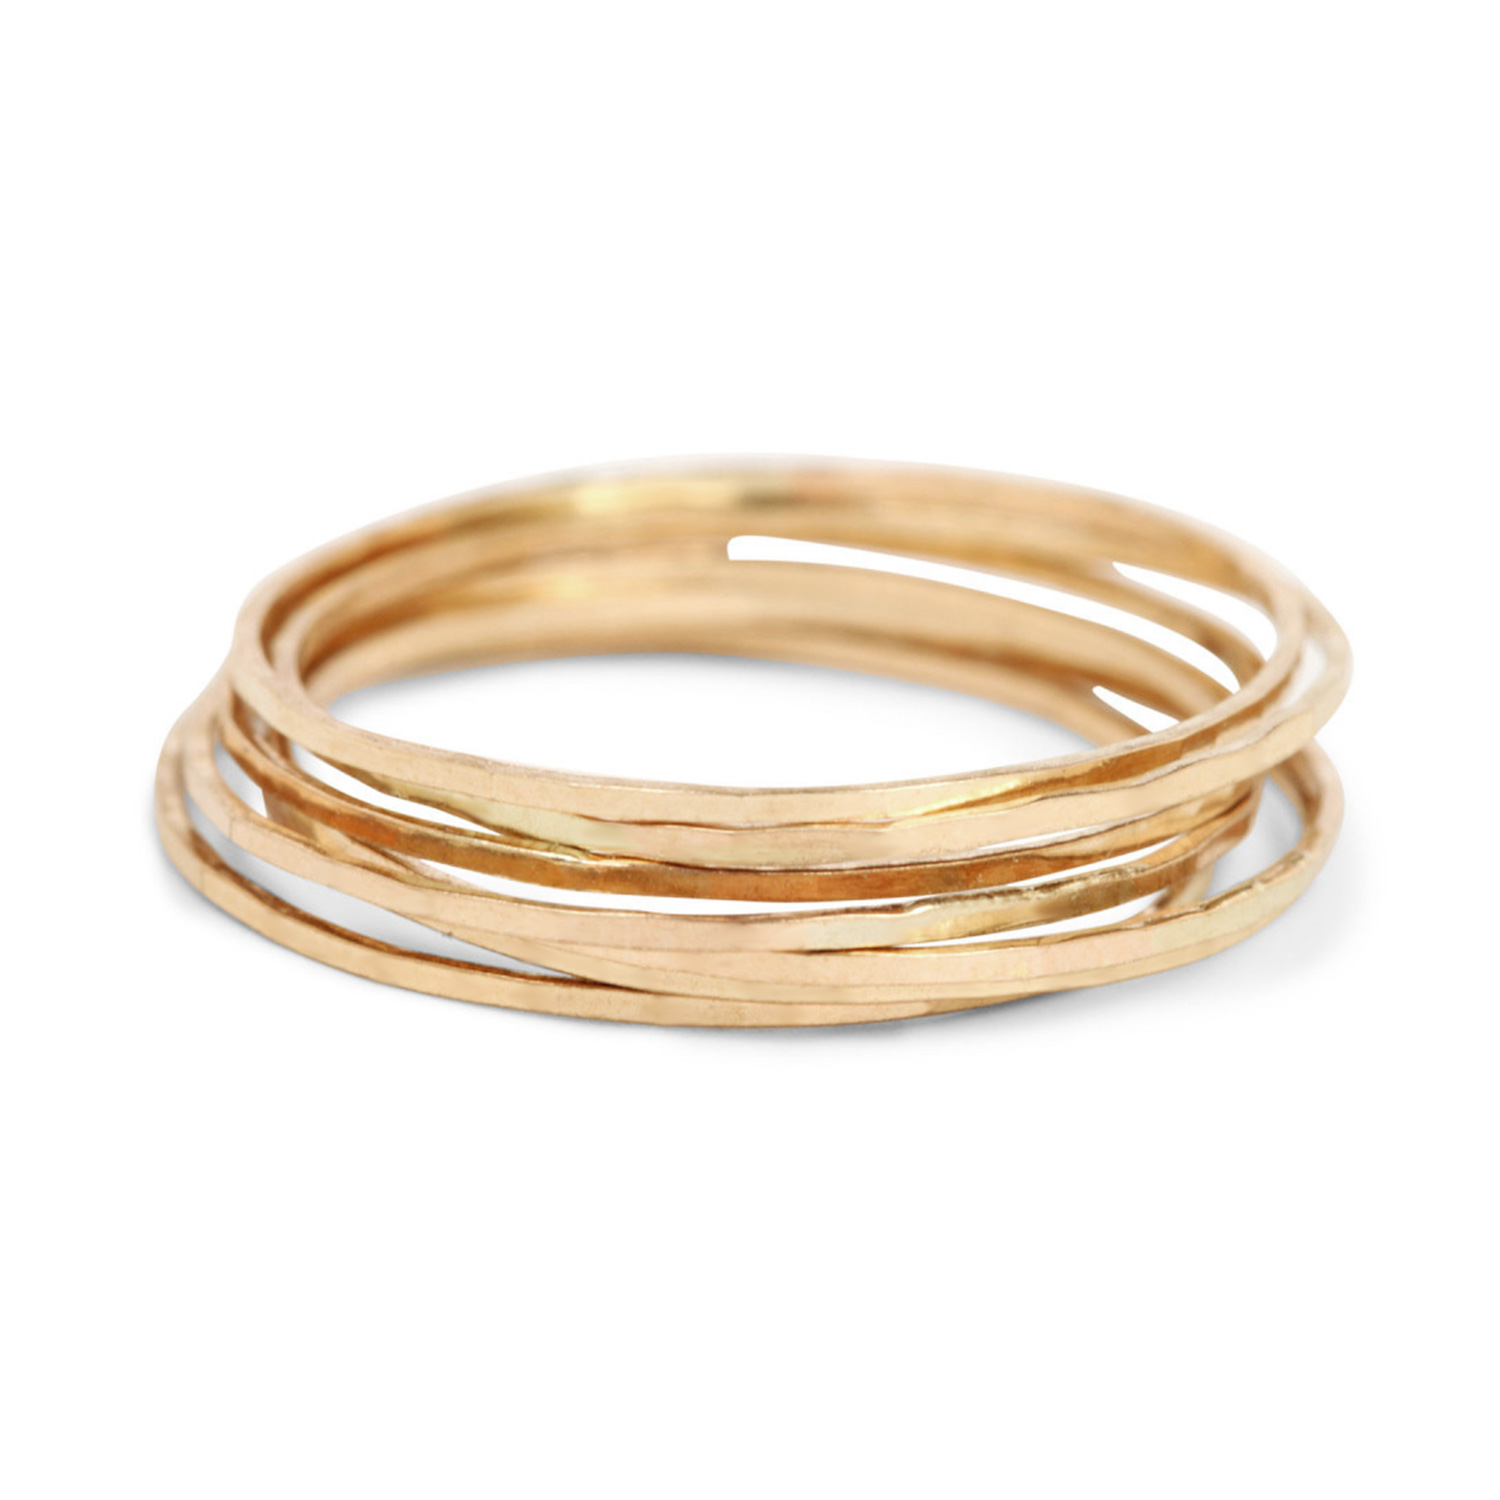 com band jewelry product gold qvc ring woven wheat bold polished page rings